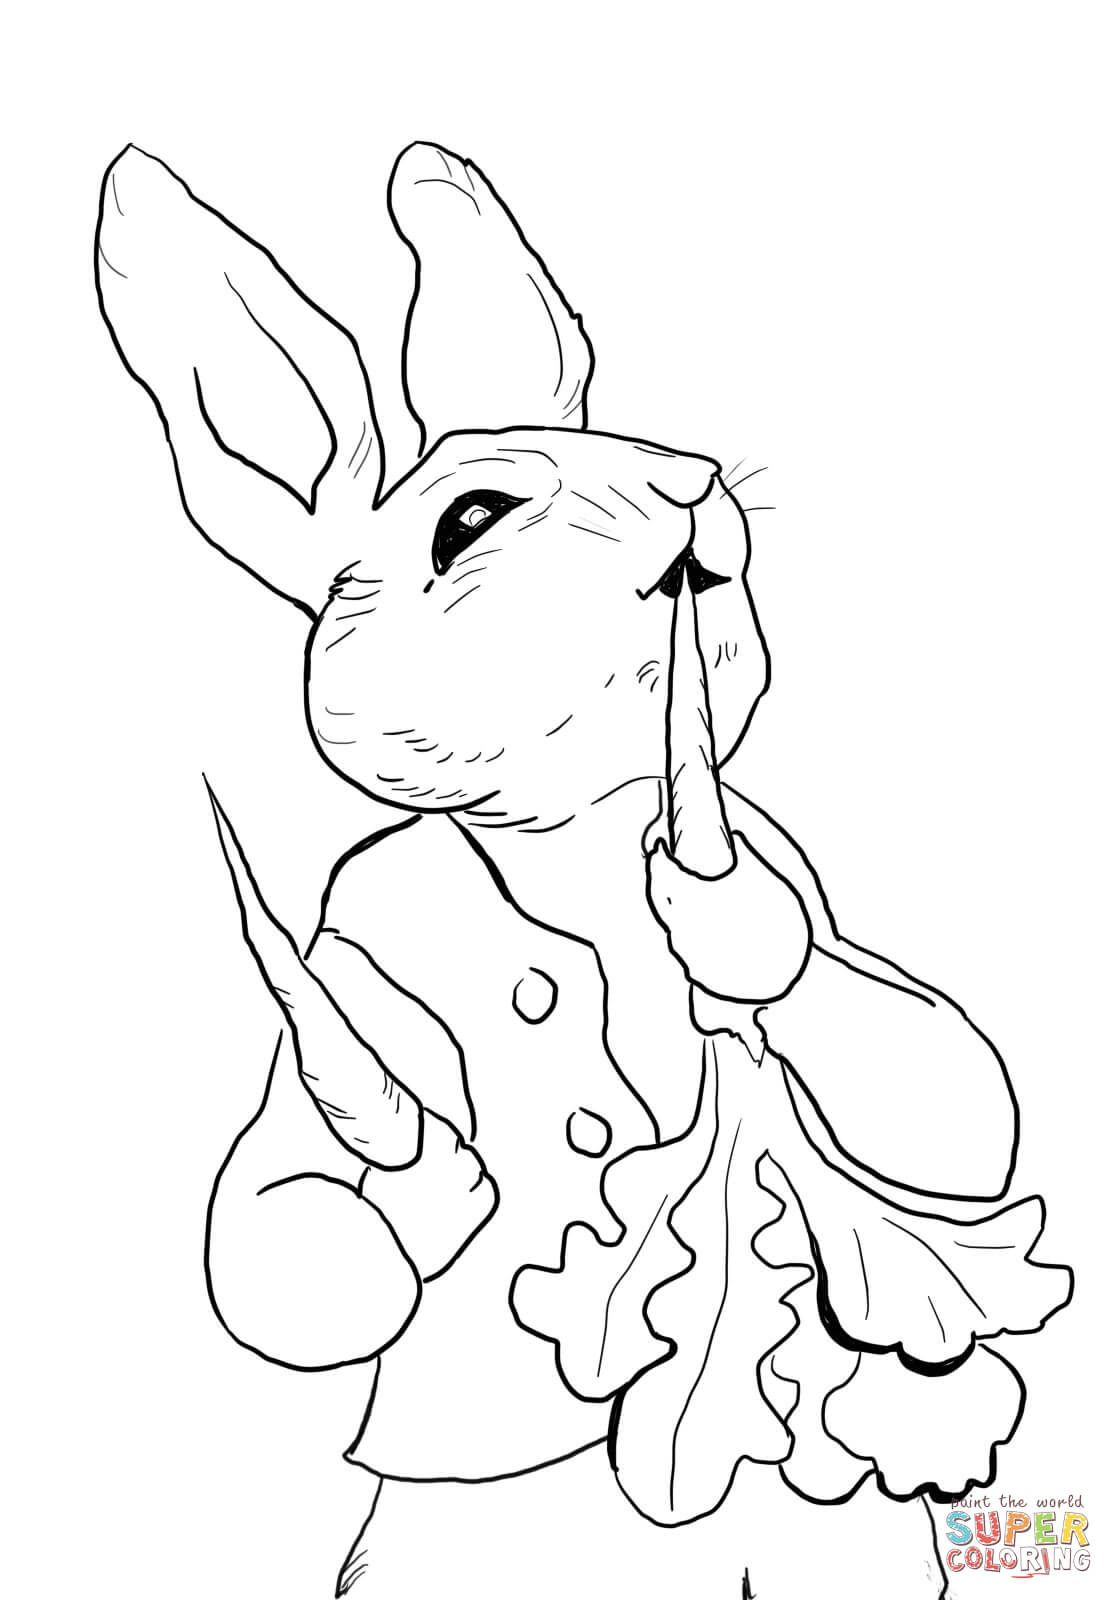 Peter Rabbit Eating Radishes Coloring Page From Peter Rabbit Category Select From 29189 Printable Bunny Coloring Pages Peter Rabbit Illustration Rabbit Colors